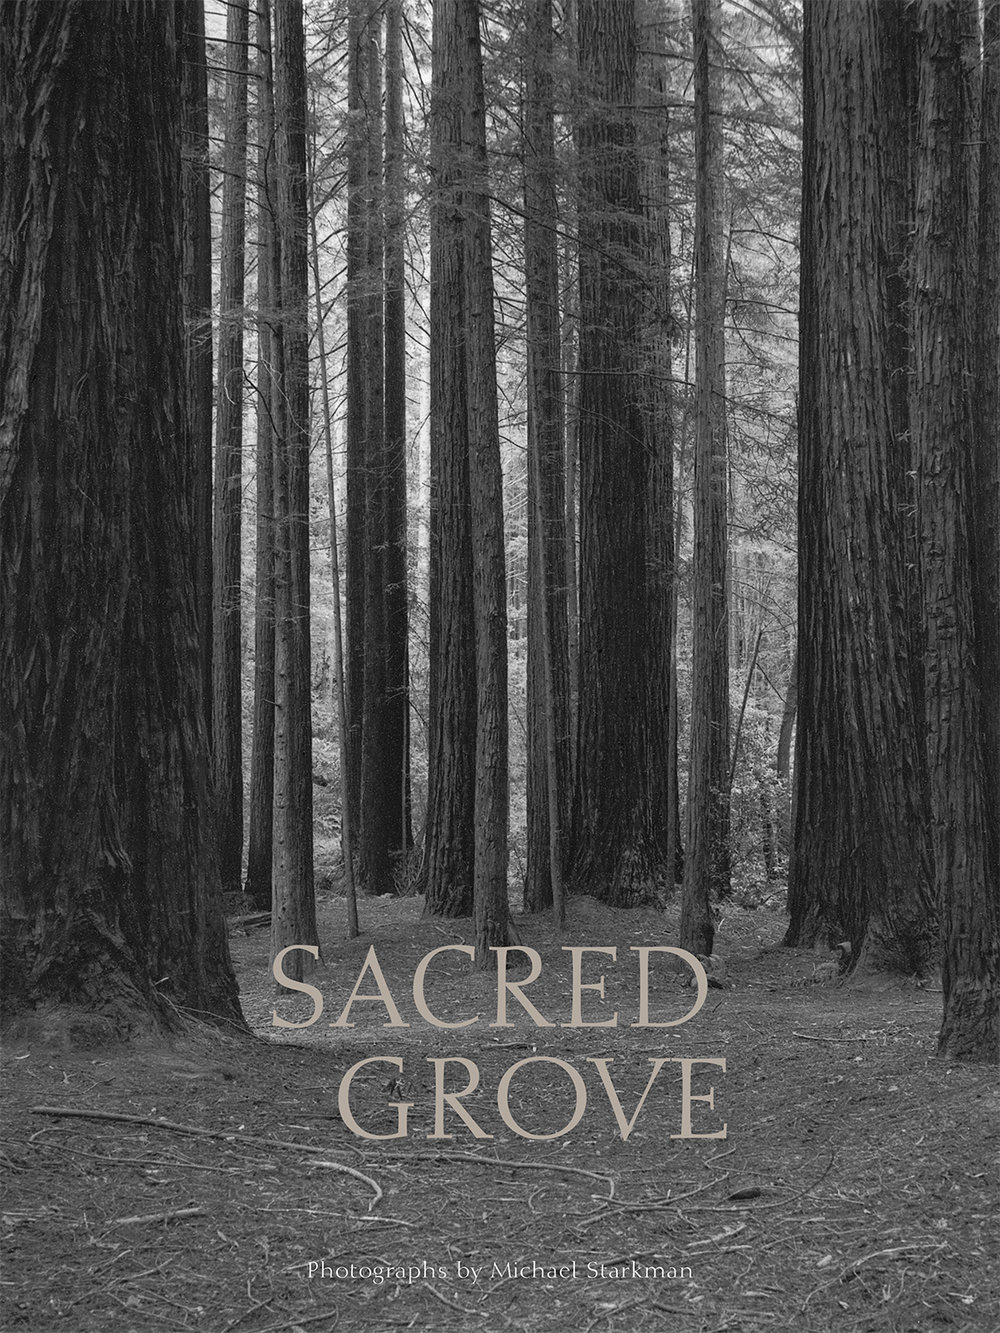 SacredGrove_cover.jpg